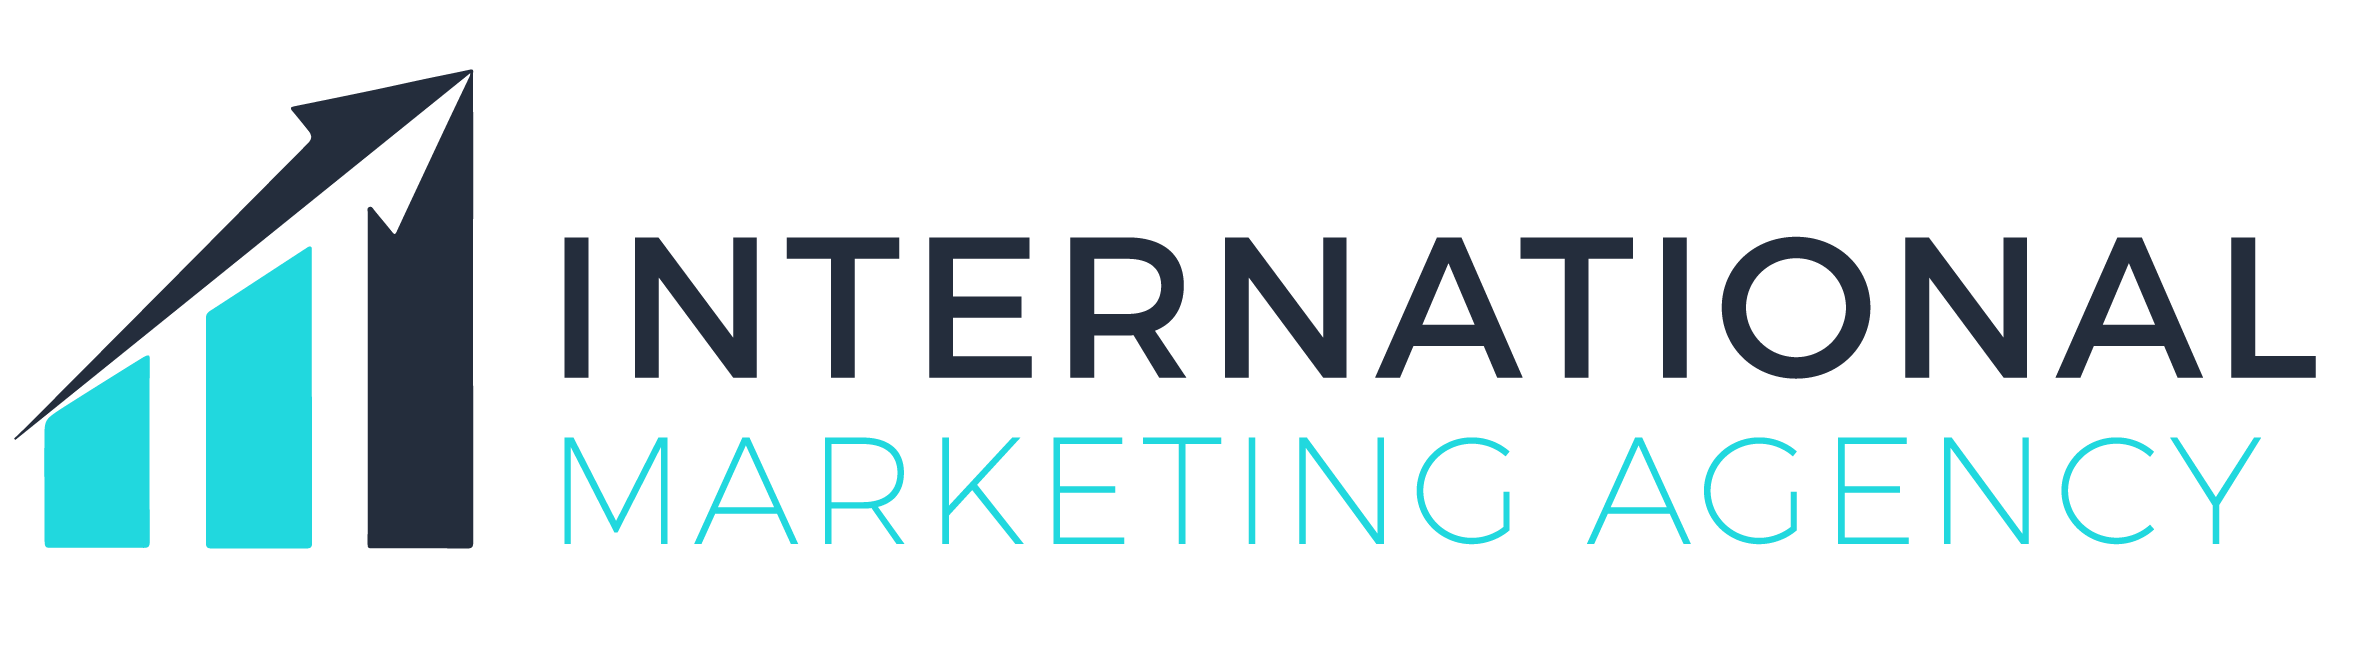 International Marketing Agency NJ